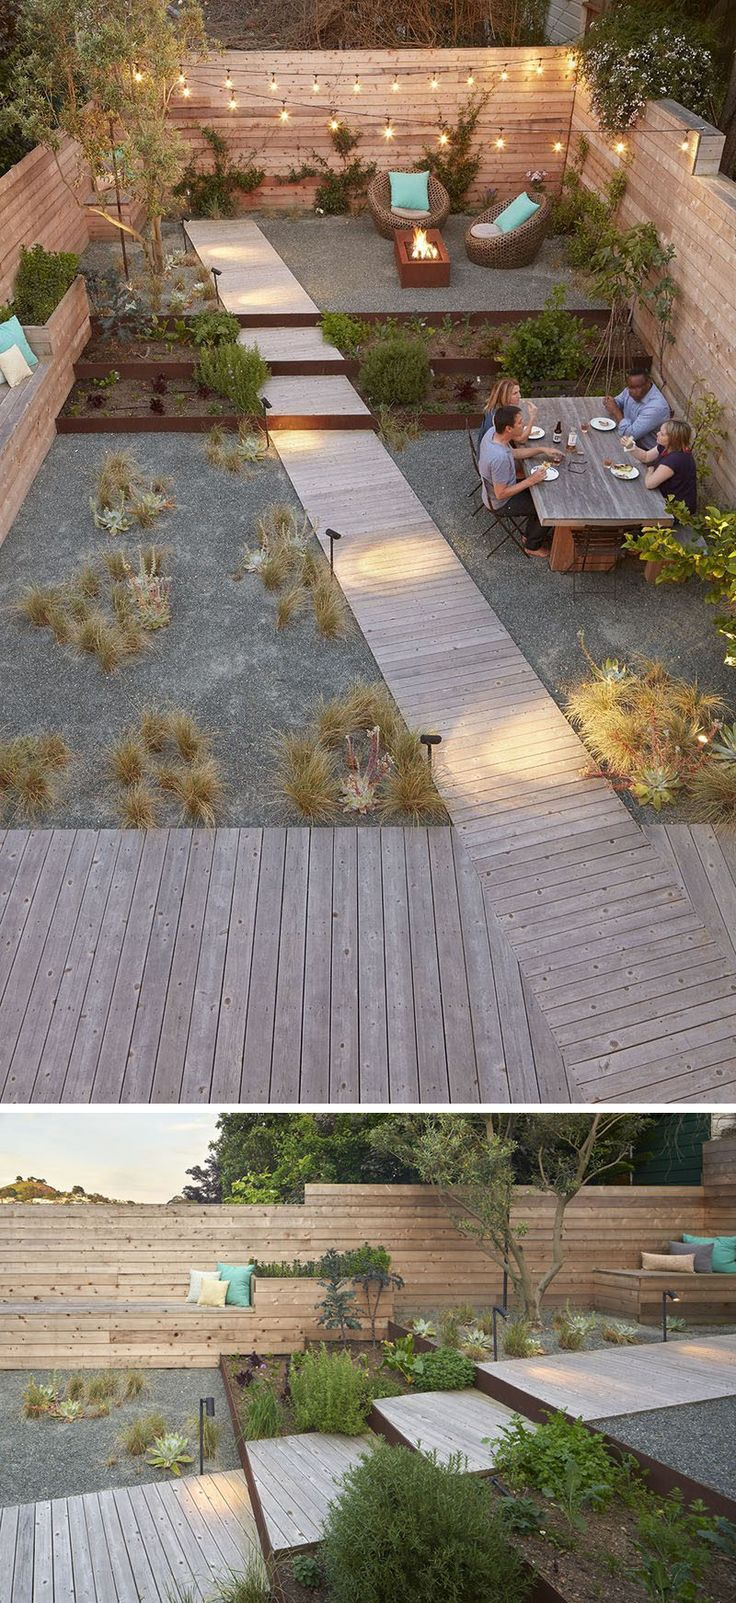 Landscaping Design Ideas - 11 Backyards Designed For Entertaining   Despite it's small size, three separate spaces exist in this fully landscaped backyard to accommodate dining, lounging, and socializing making it an ideal space for hosting guests and throwing dinner parties.